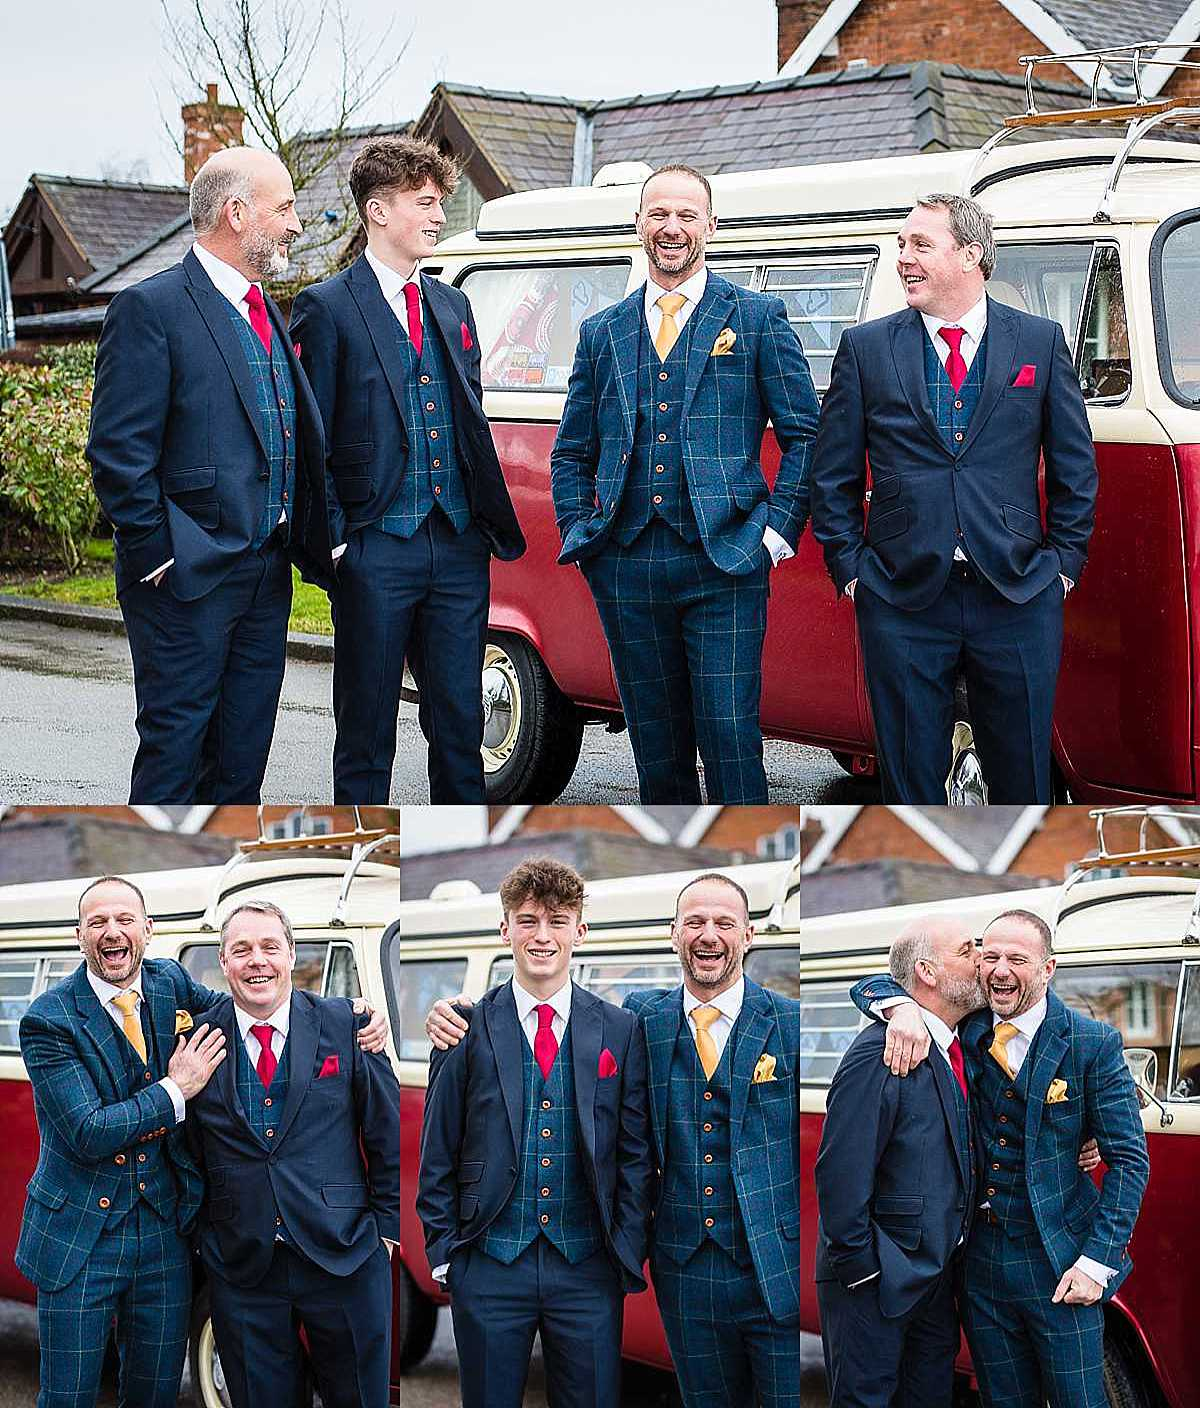 groom and the grooms men having portraits around the wedding car - vw campervan looking happy